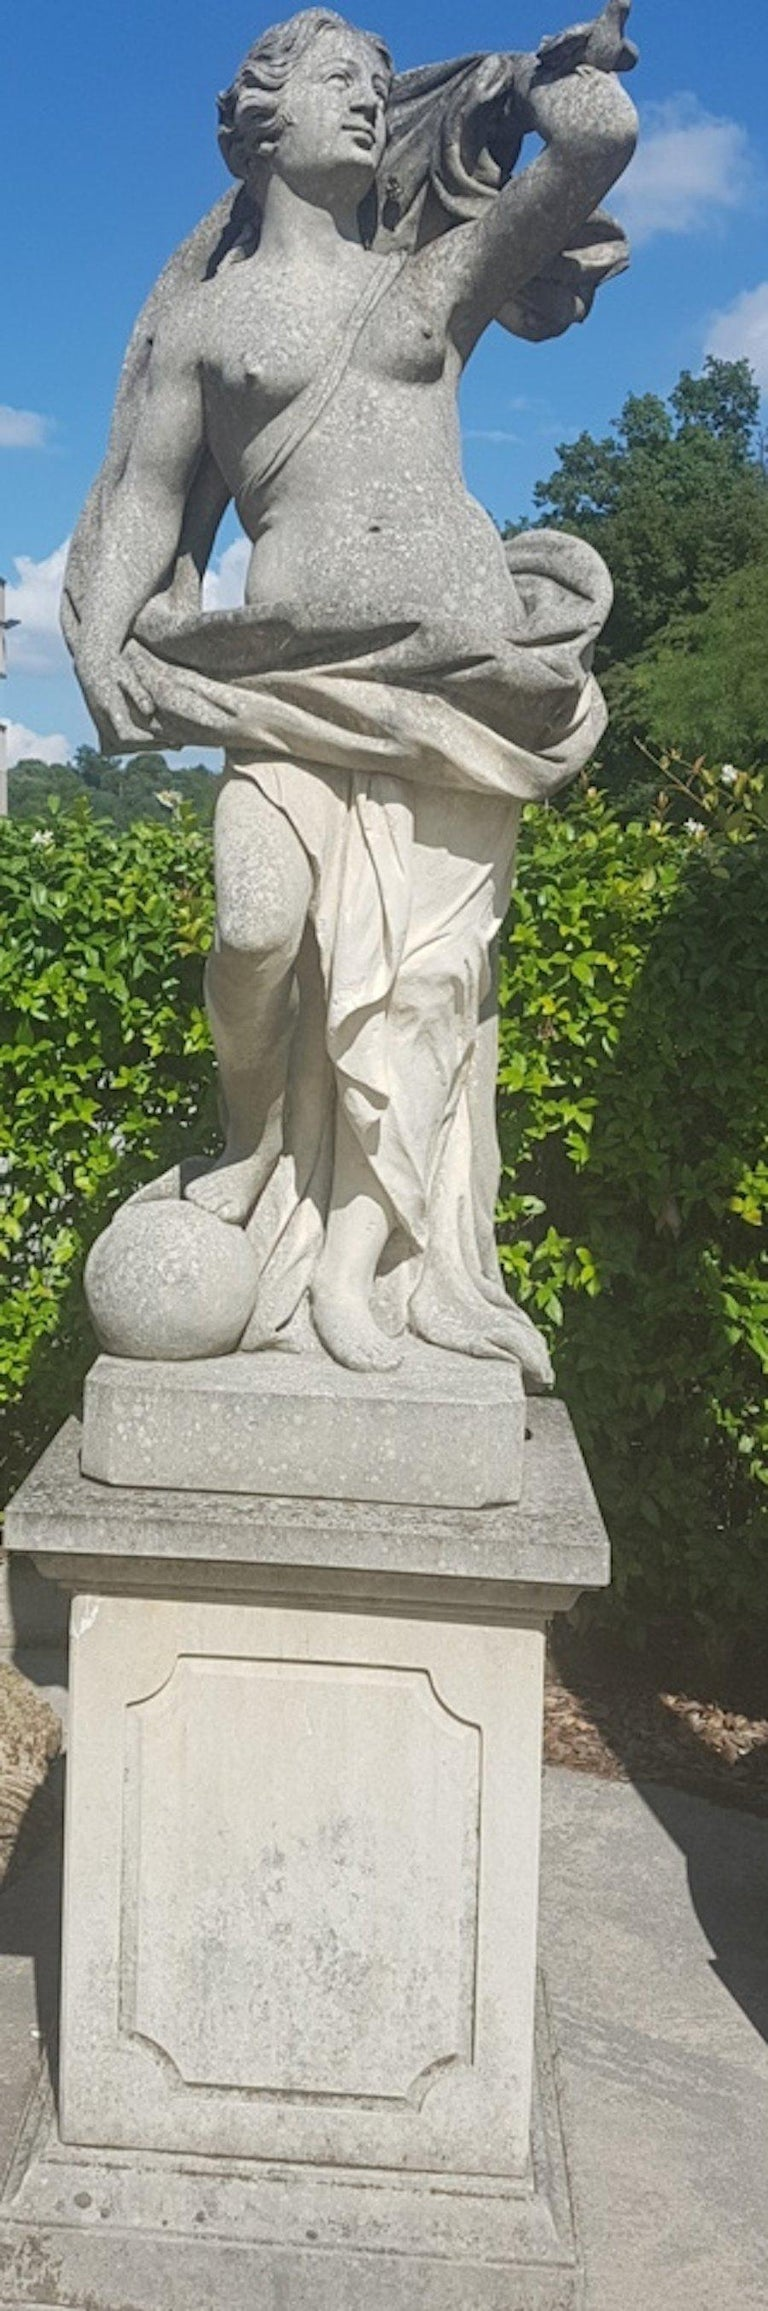 Neoclassical Two Italian Stone Garden Sculptures of Apollo and Roman Goddess For Sale